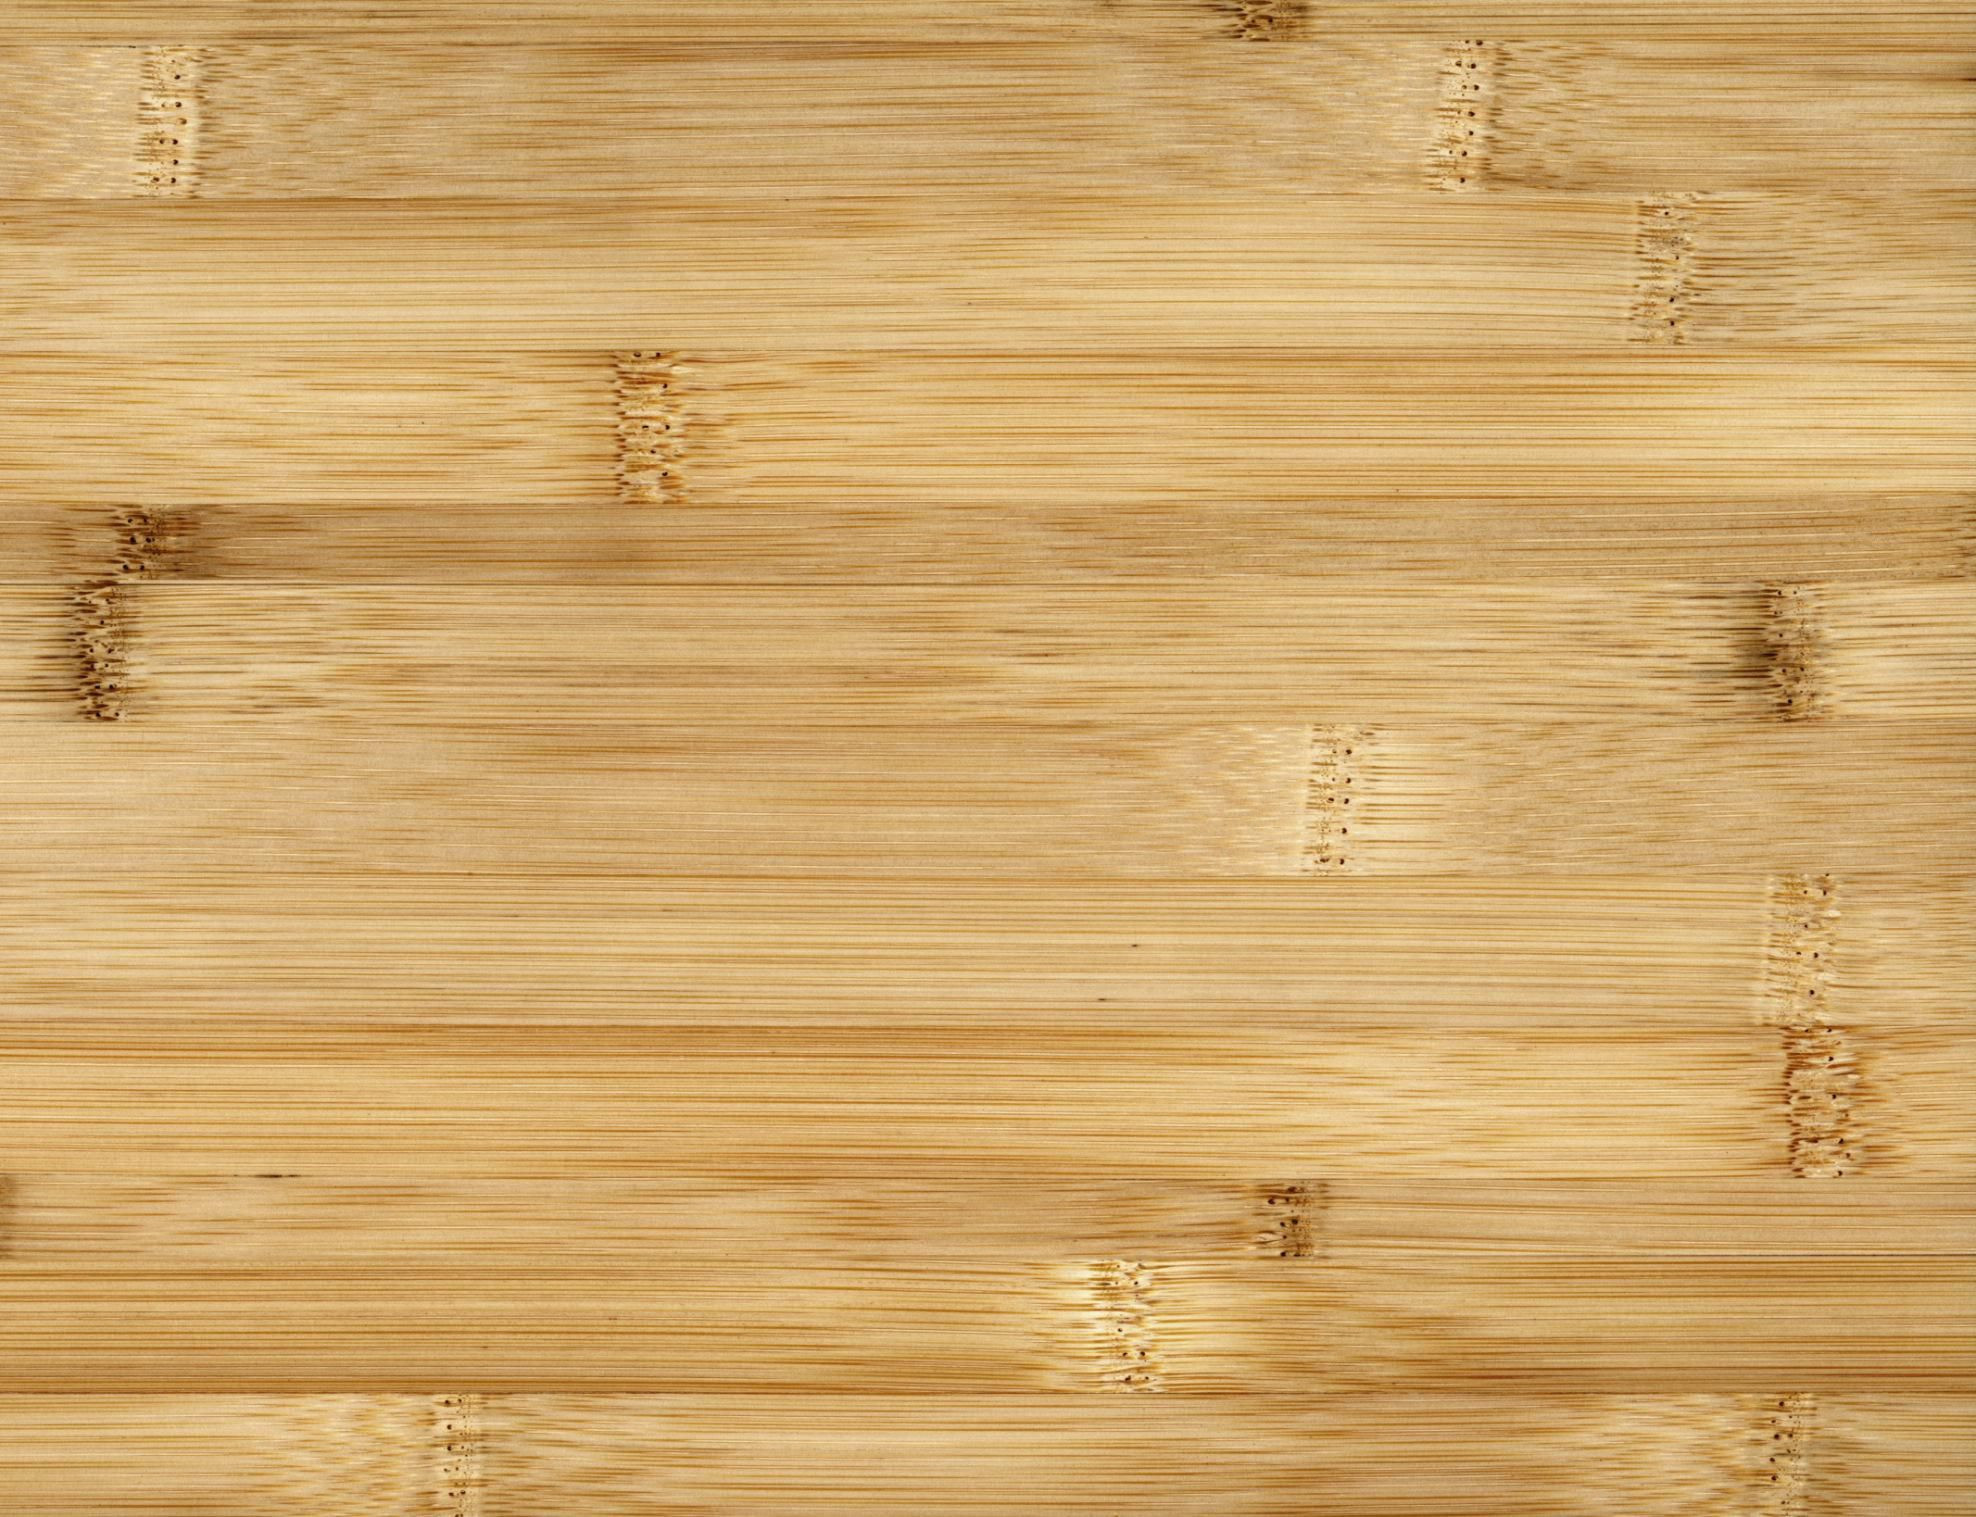 hardwood floor buffing pads of how to clean bamboo flooring with 200266305 001 56a2fd815f9b58b7d0d000cd